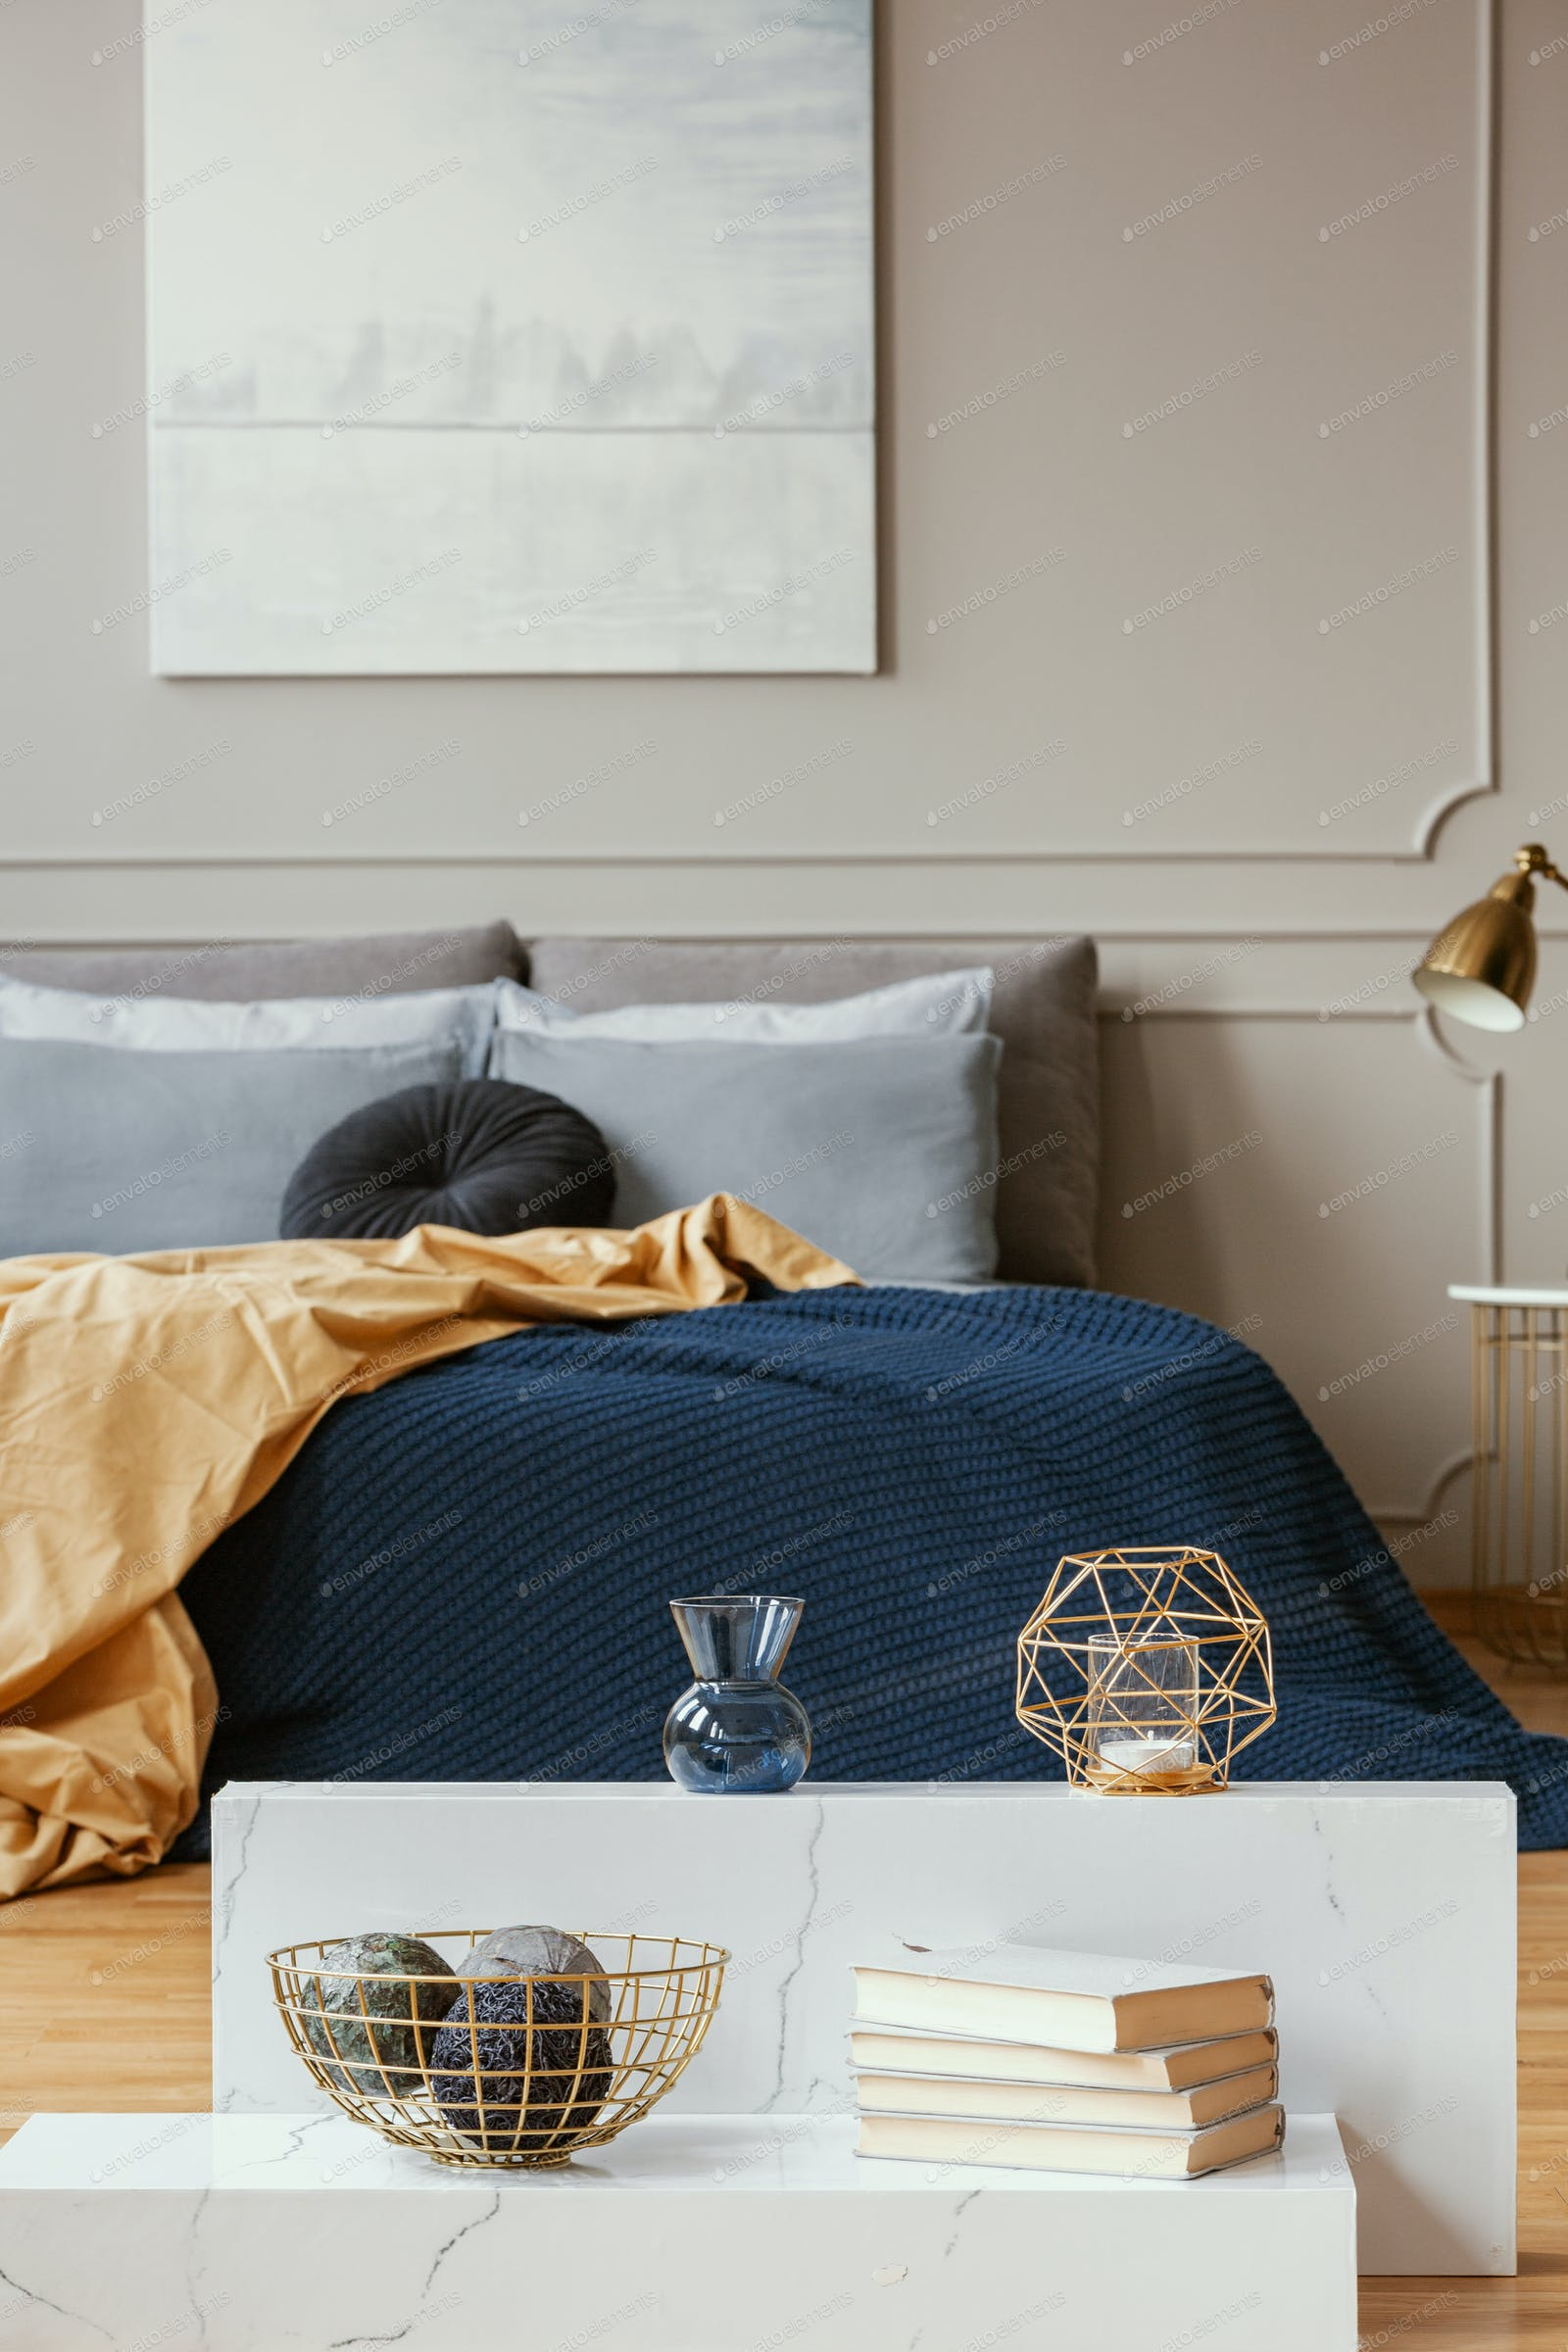 Vertical view of elegant blue, grey, gold and orange bedroom photo by  bialasiewicz on Envato Elements